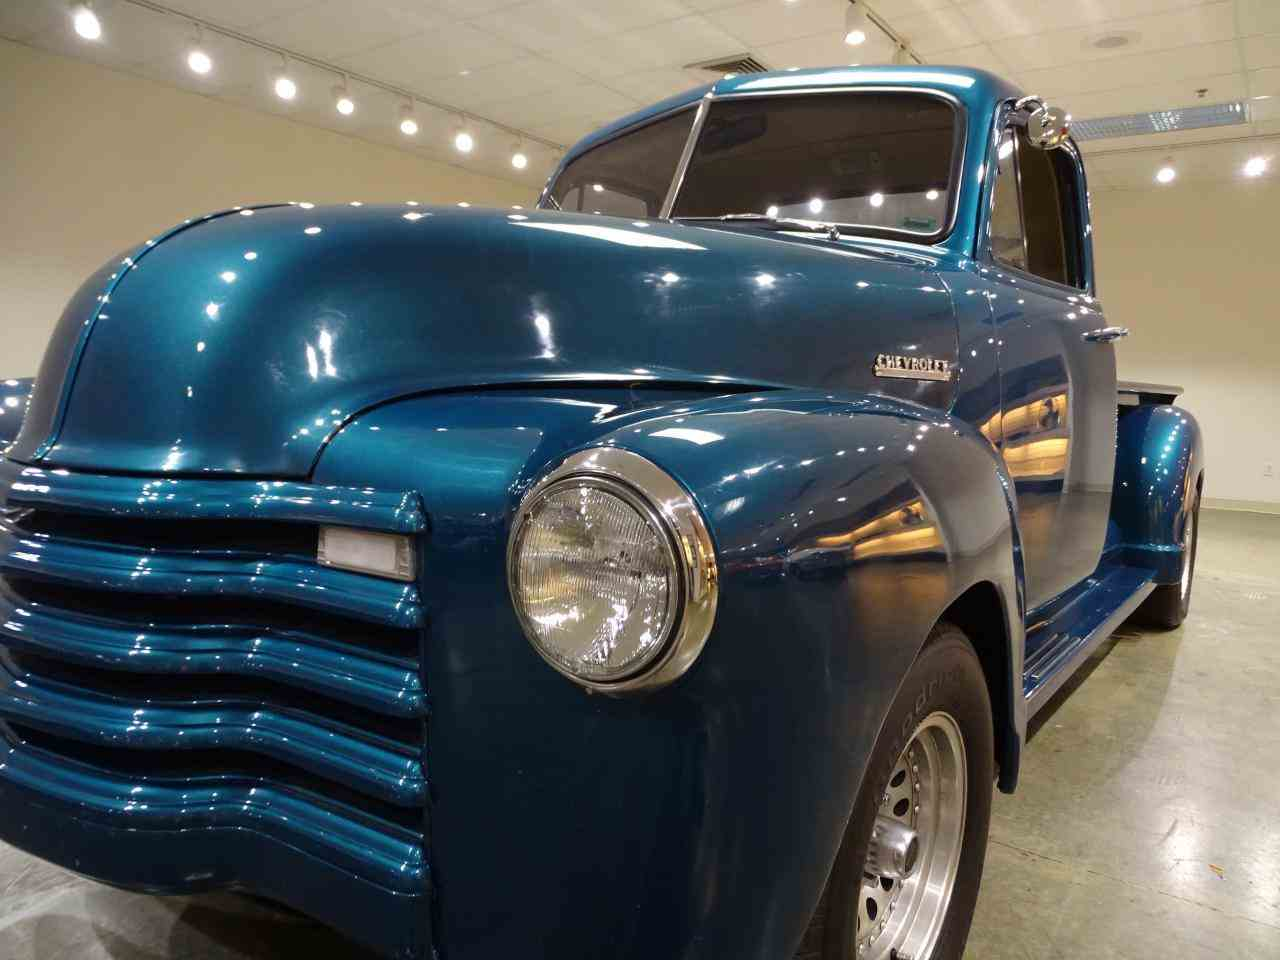 Pickup 1952 chevy pickup for sale : 1952 Chevrolet Pickup for Sale   ClassicCars.com   CC-1028030